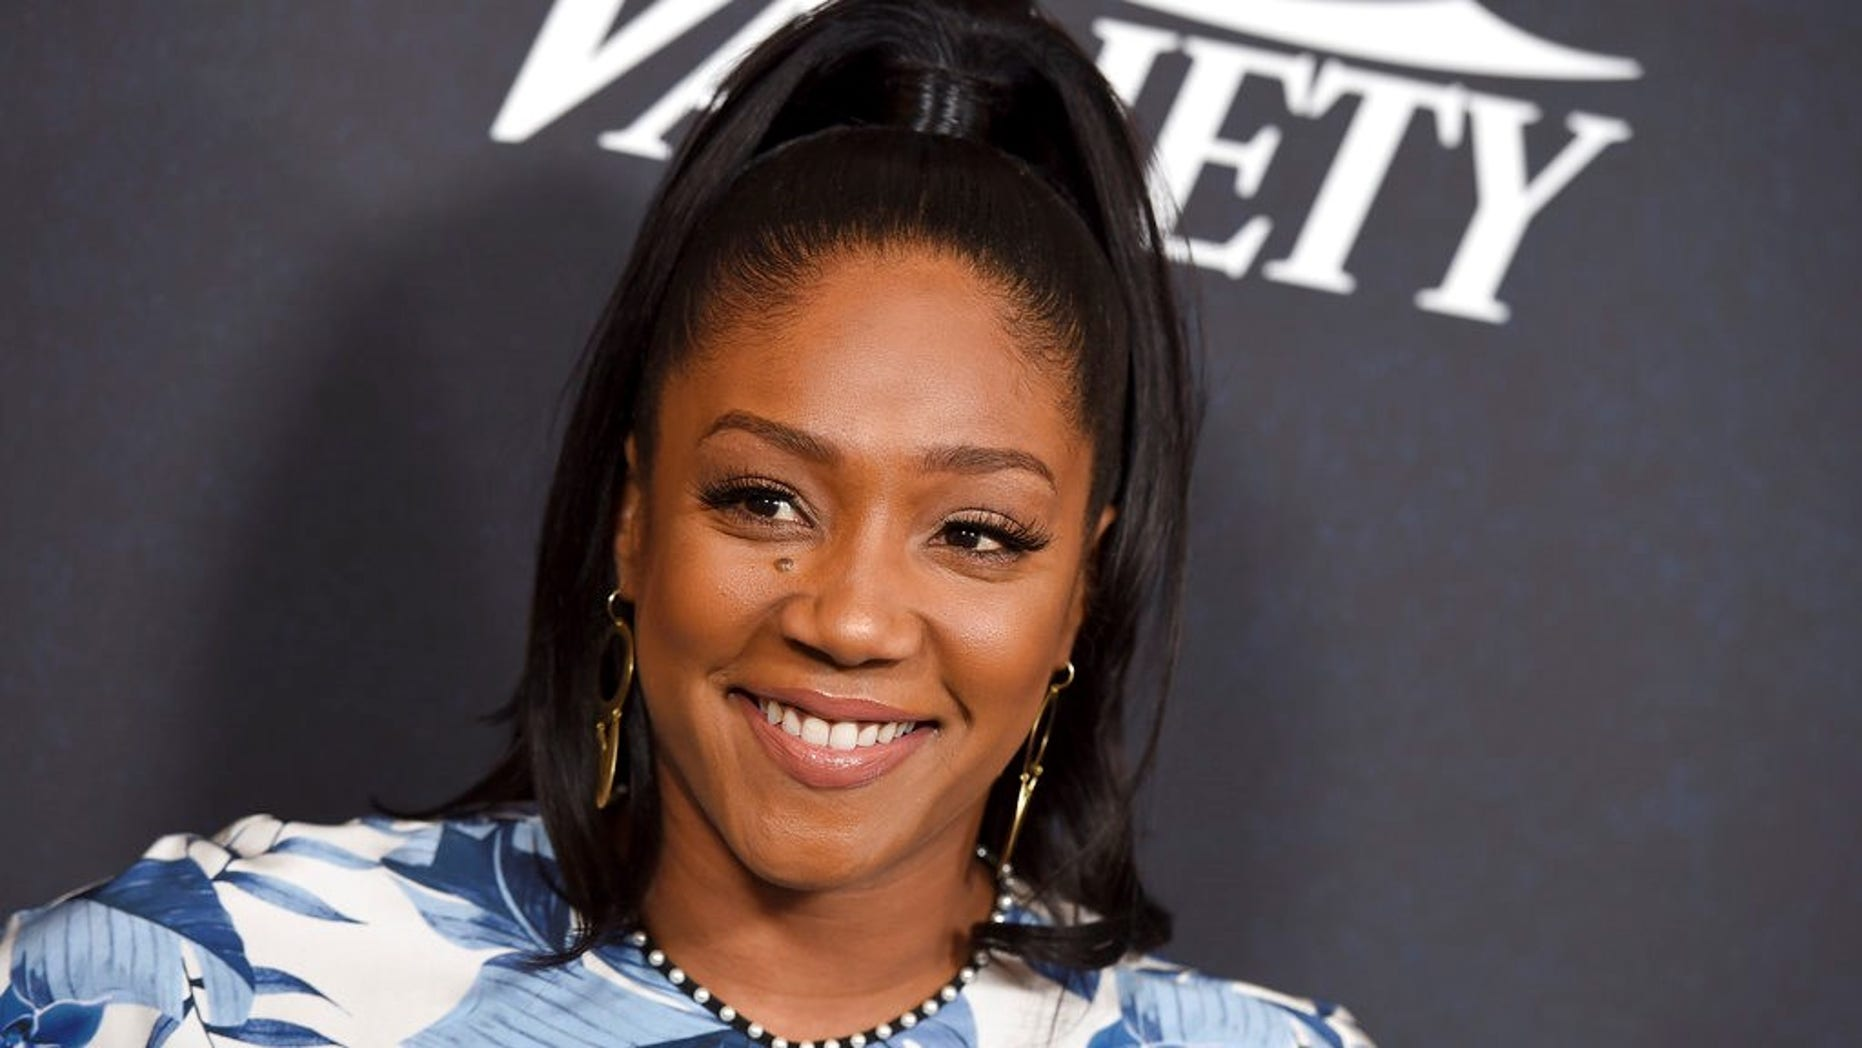 Tiffany Haddish said she had suicidal thoughts in her early 20s until her stepfather told her he tried to kill her in a crash that severely injured her mother.